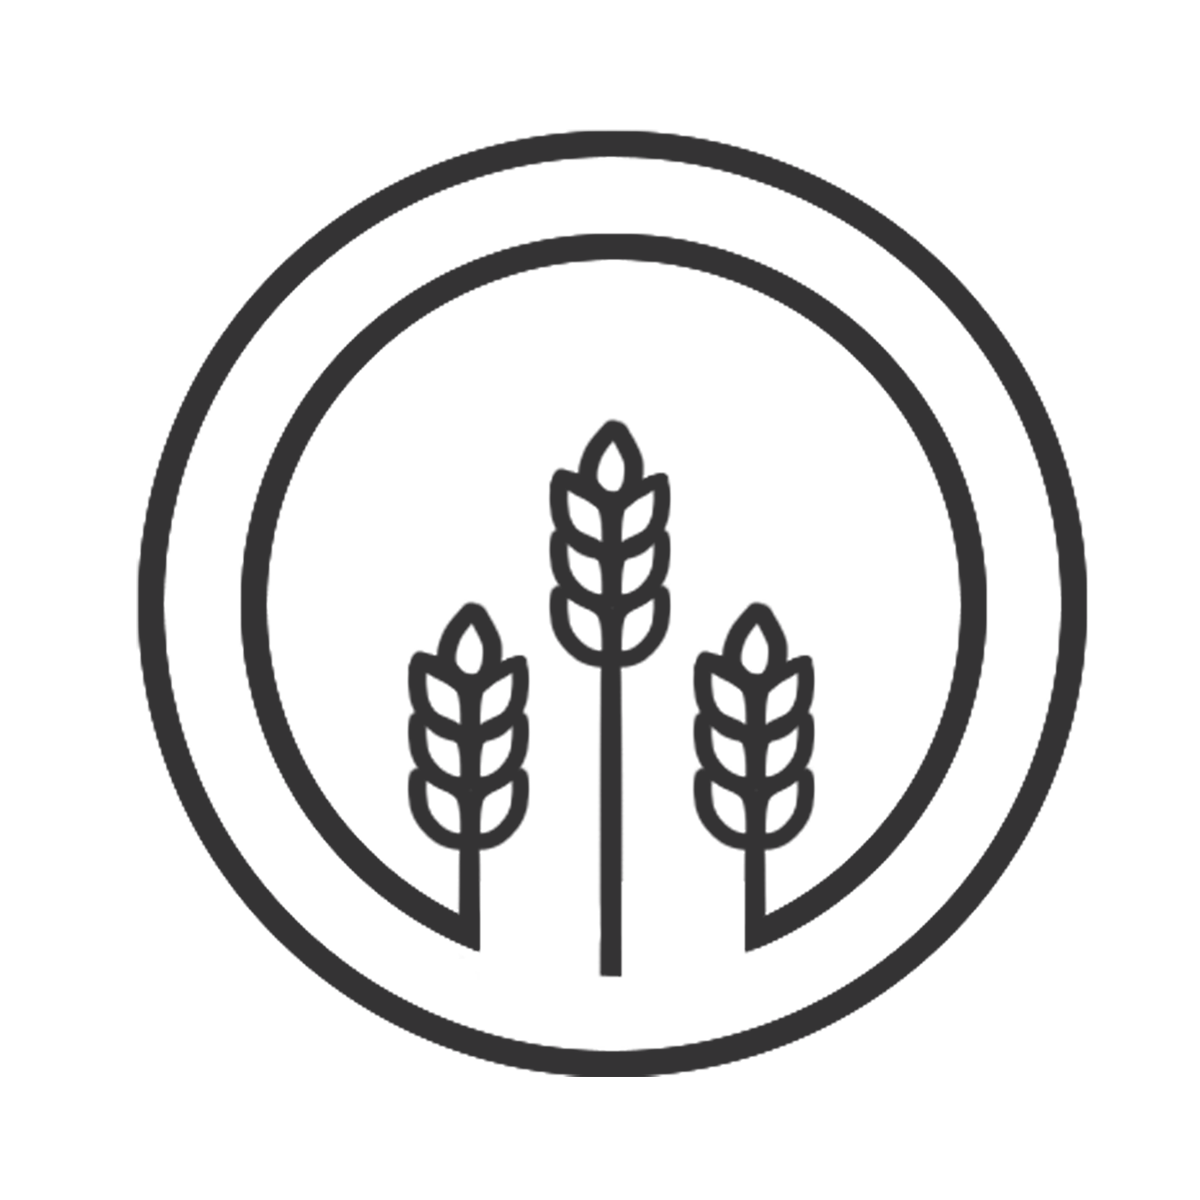 TCM_icons_agriculture.png